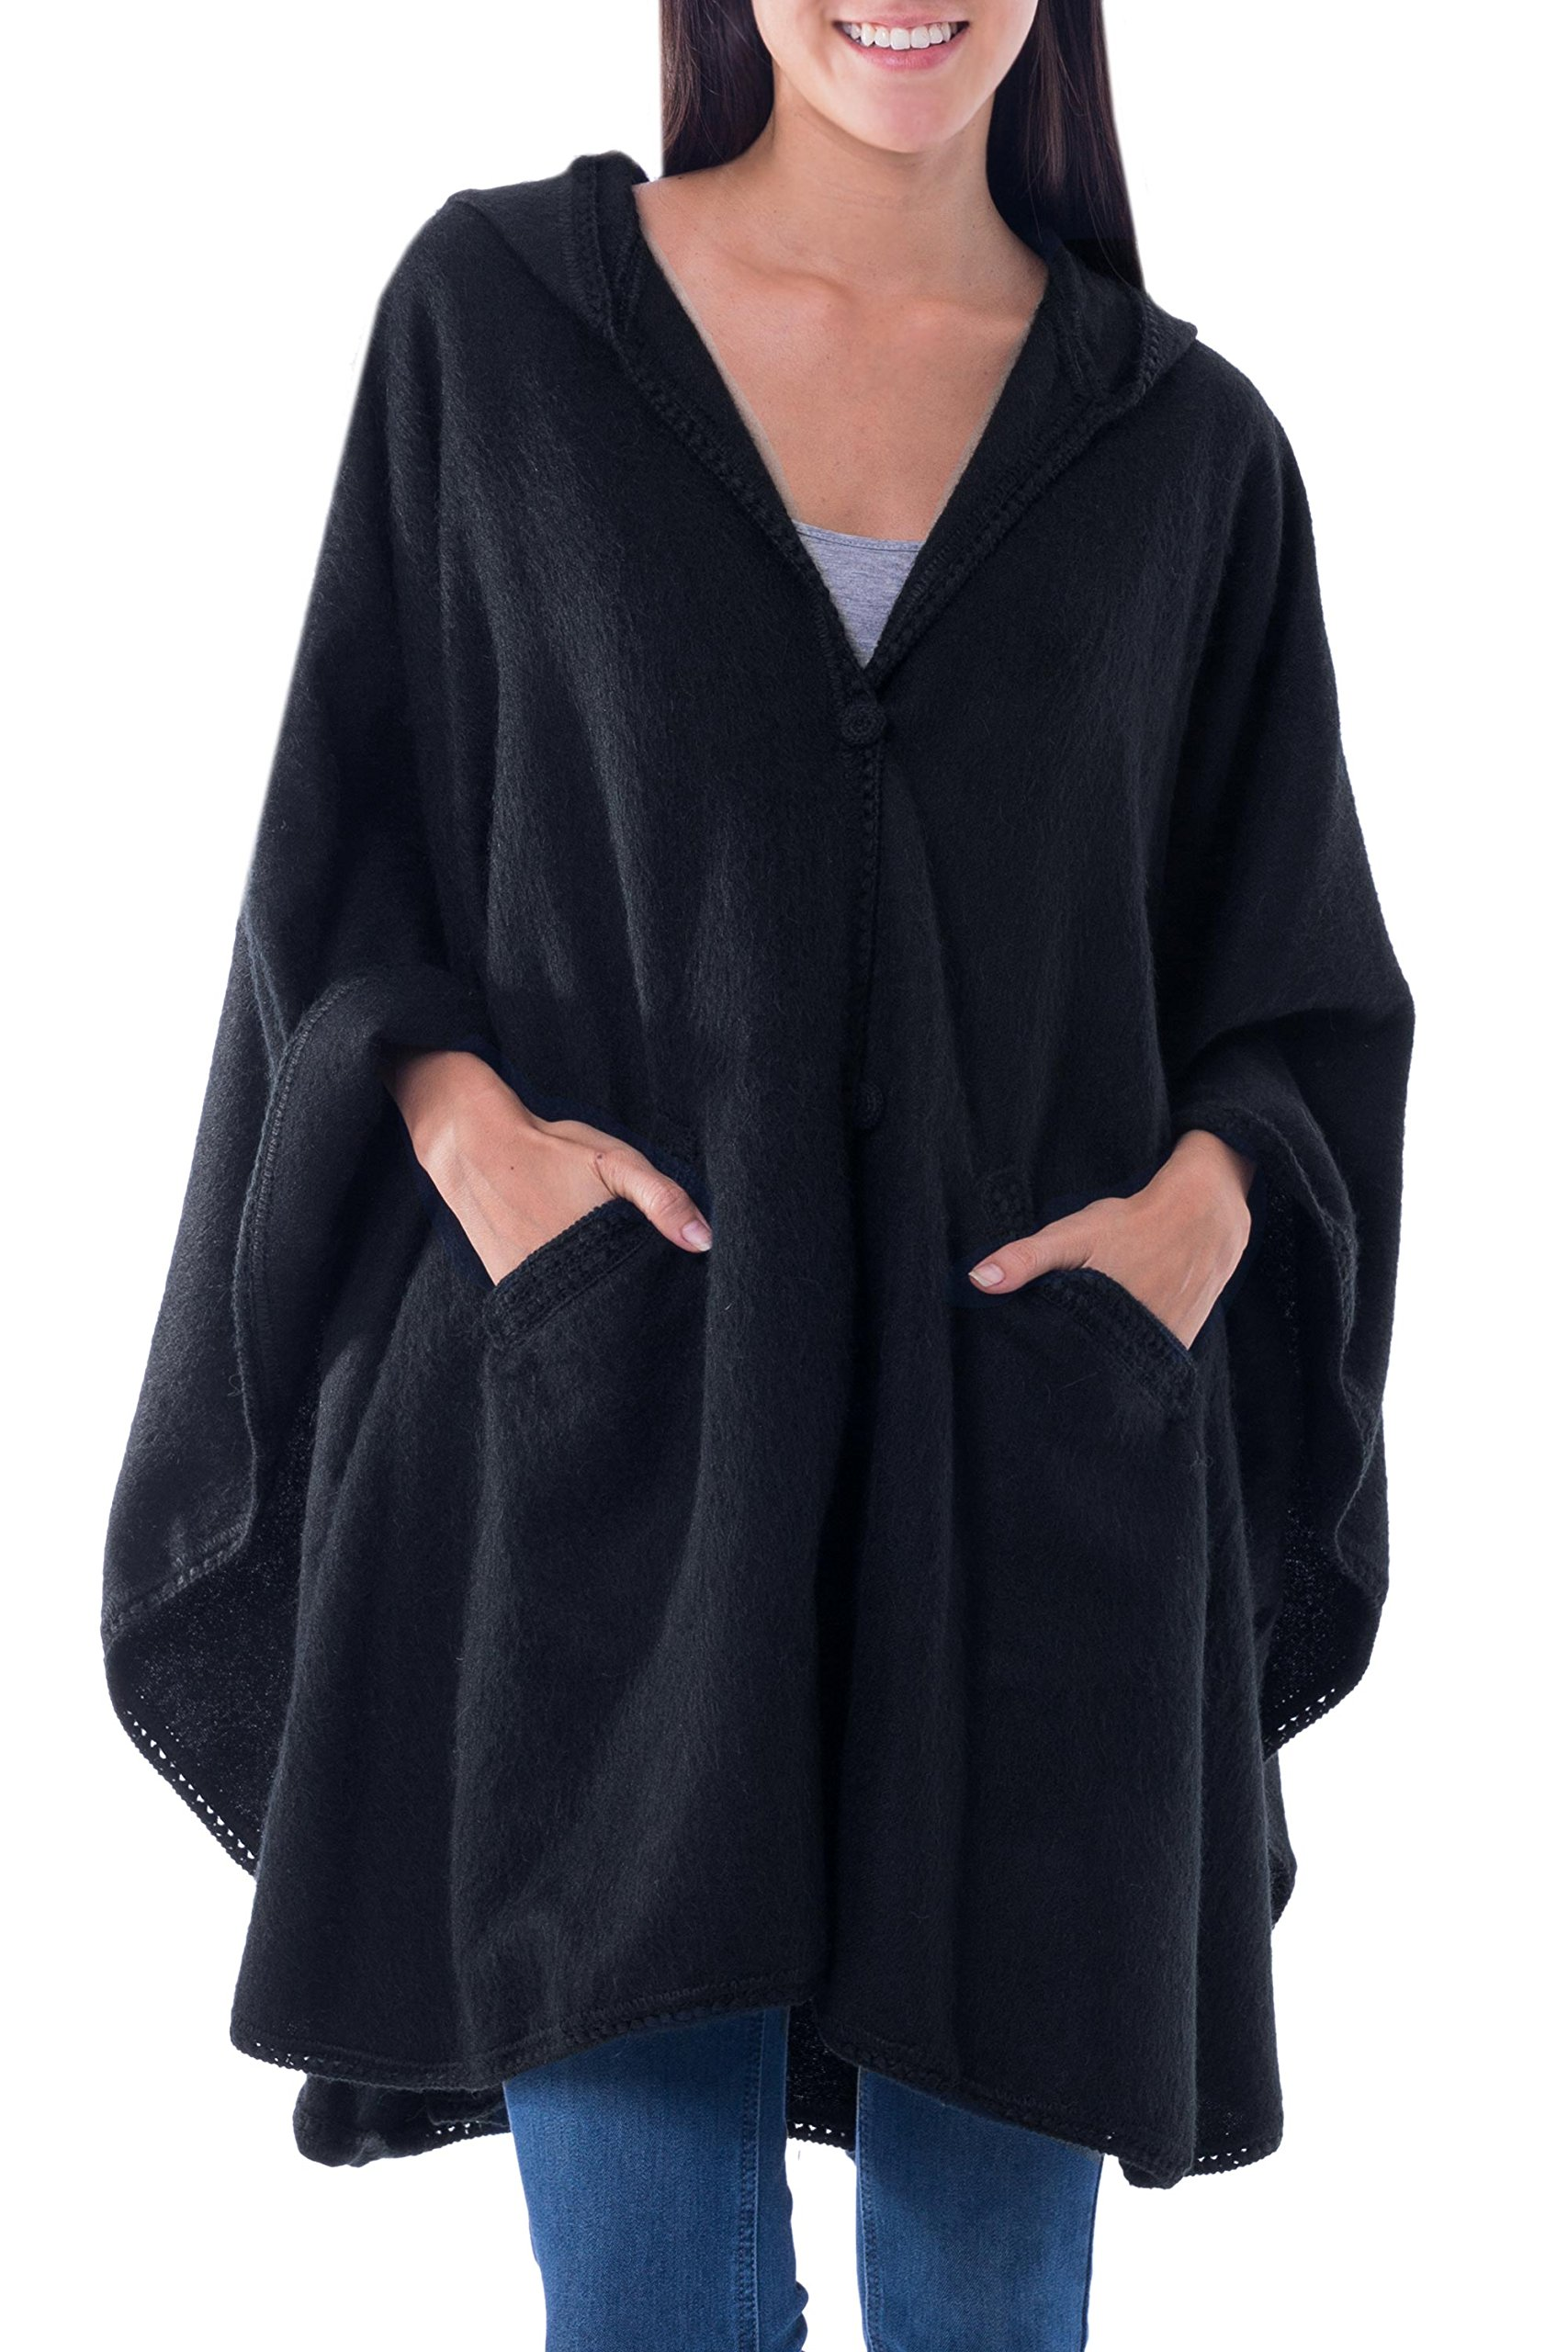 NOVICA Black Alpaca Blend Hooded Ruana Cape, 'Glamorous Night' by NOVICA